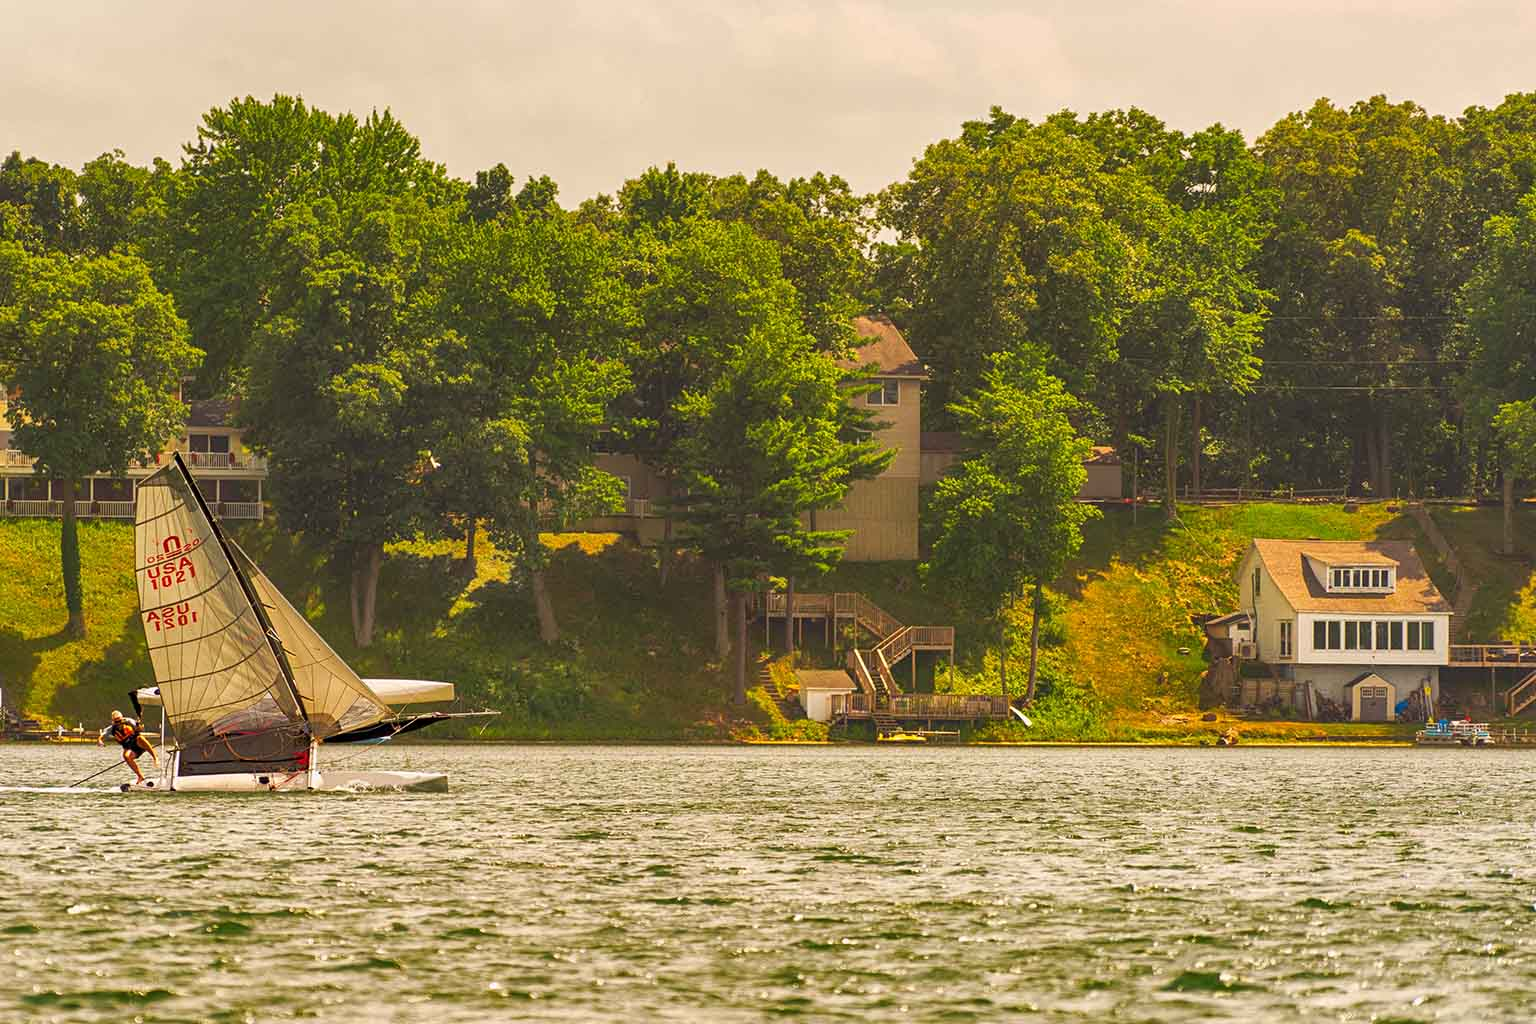 A sailboat glides by houses